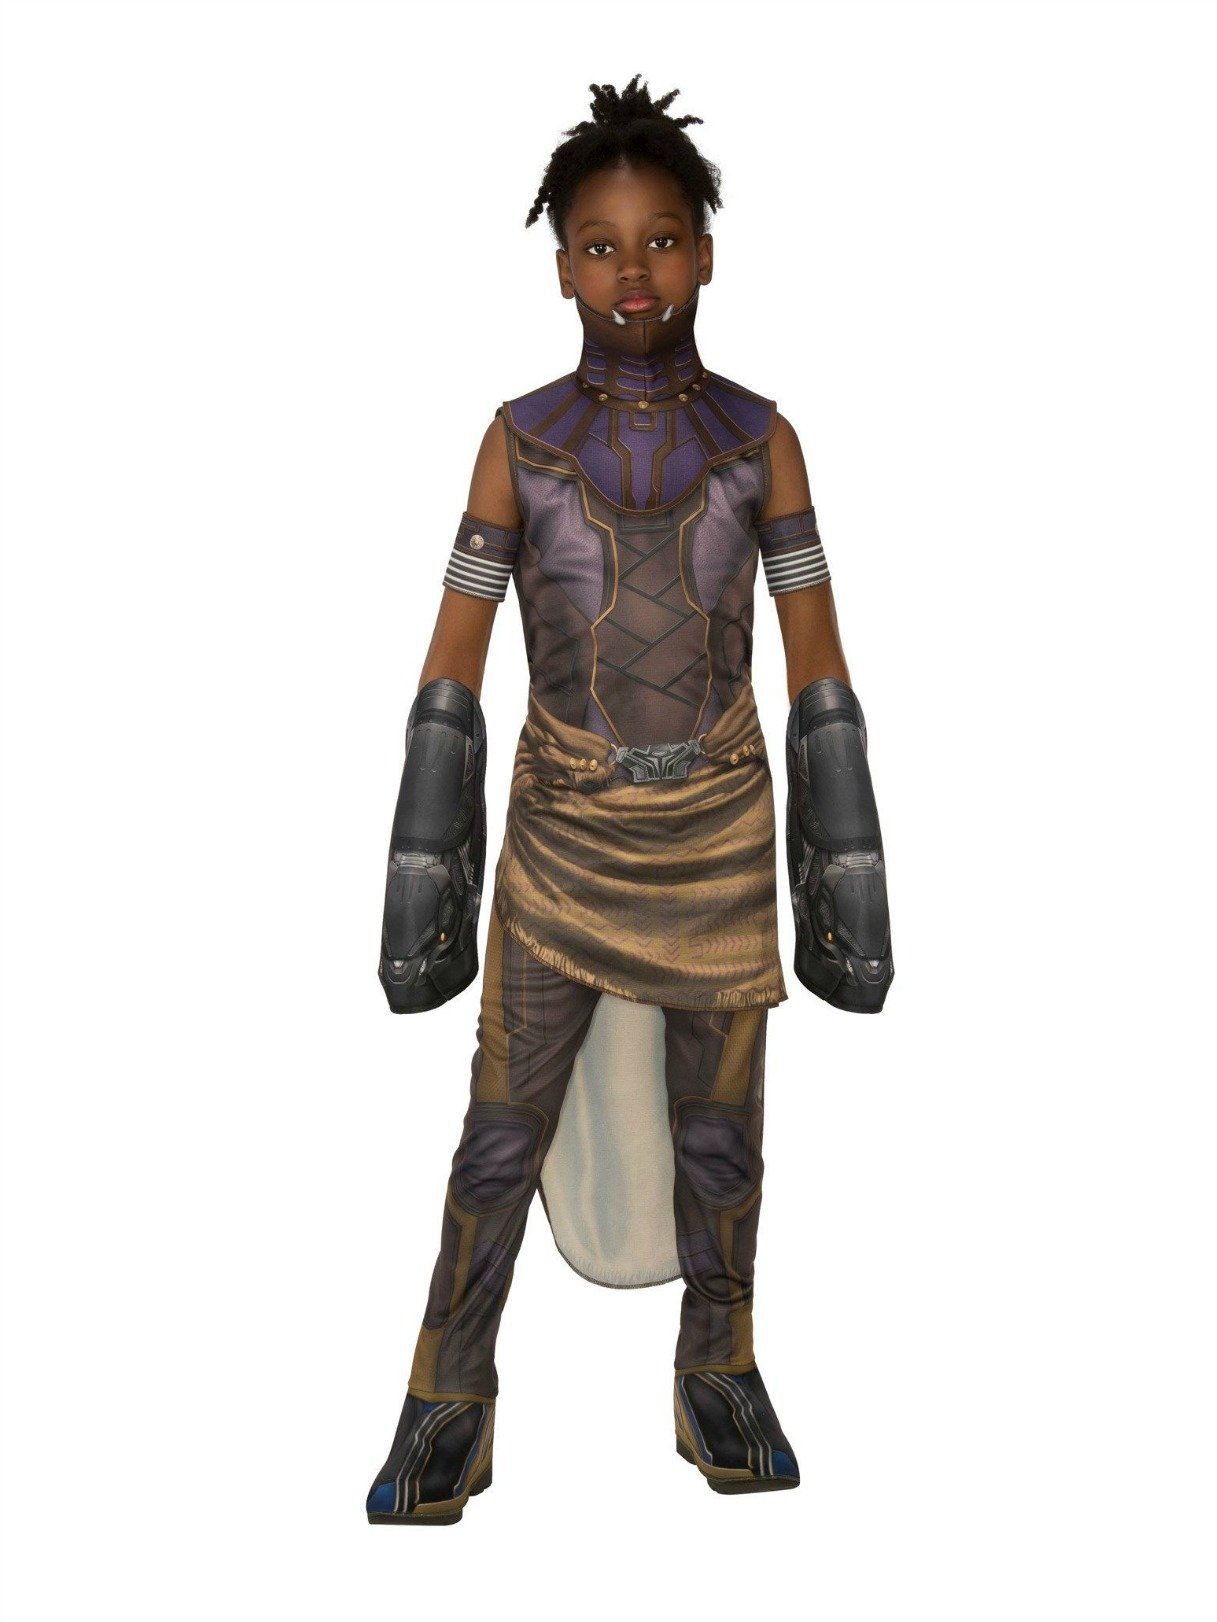 Marvel: Black Panther Movie Deluxe Shuri Kids Costume